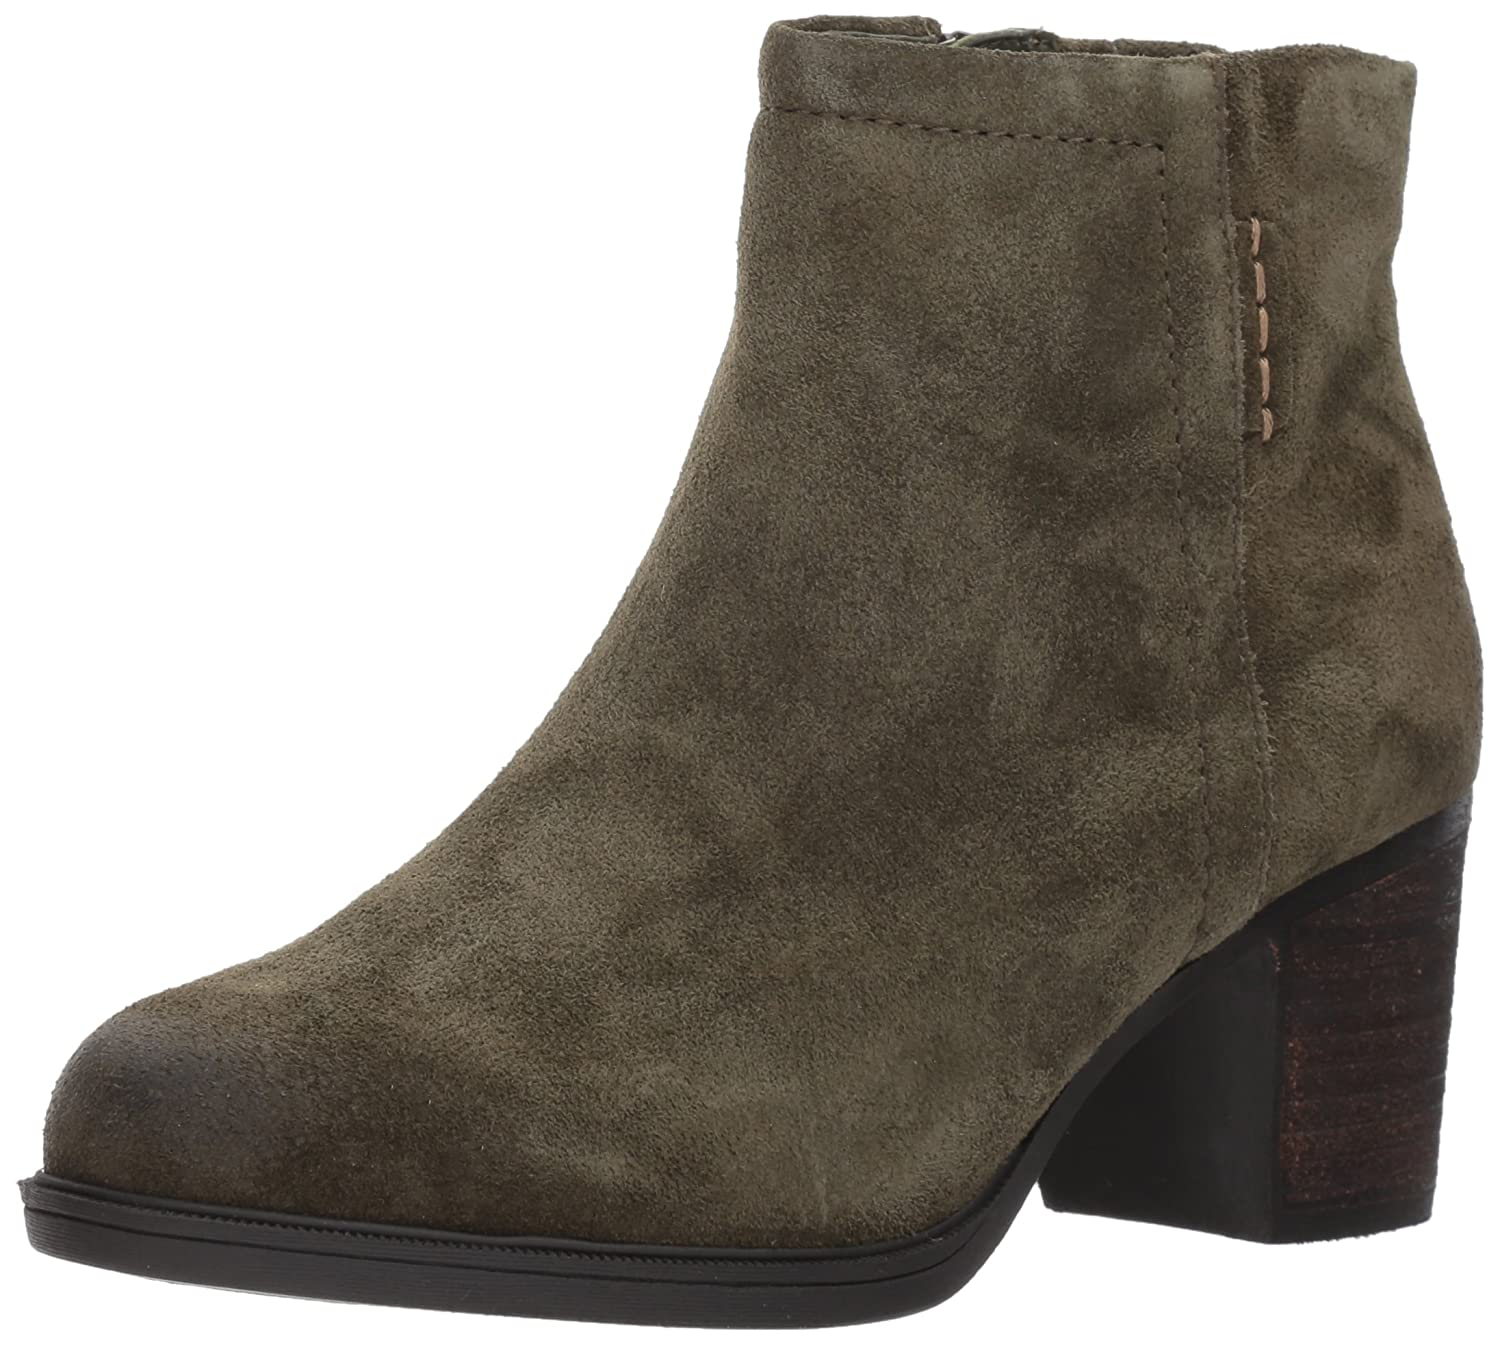 Cobb Hill Women's Natashya Bootie Ankle Boot B01MV6UADH 6 B(M) US|Green Suede